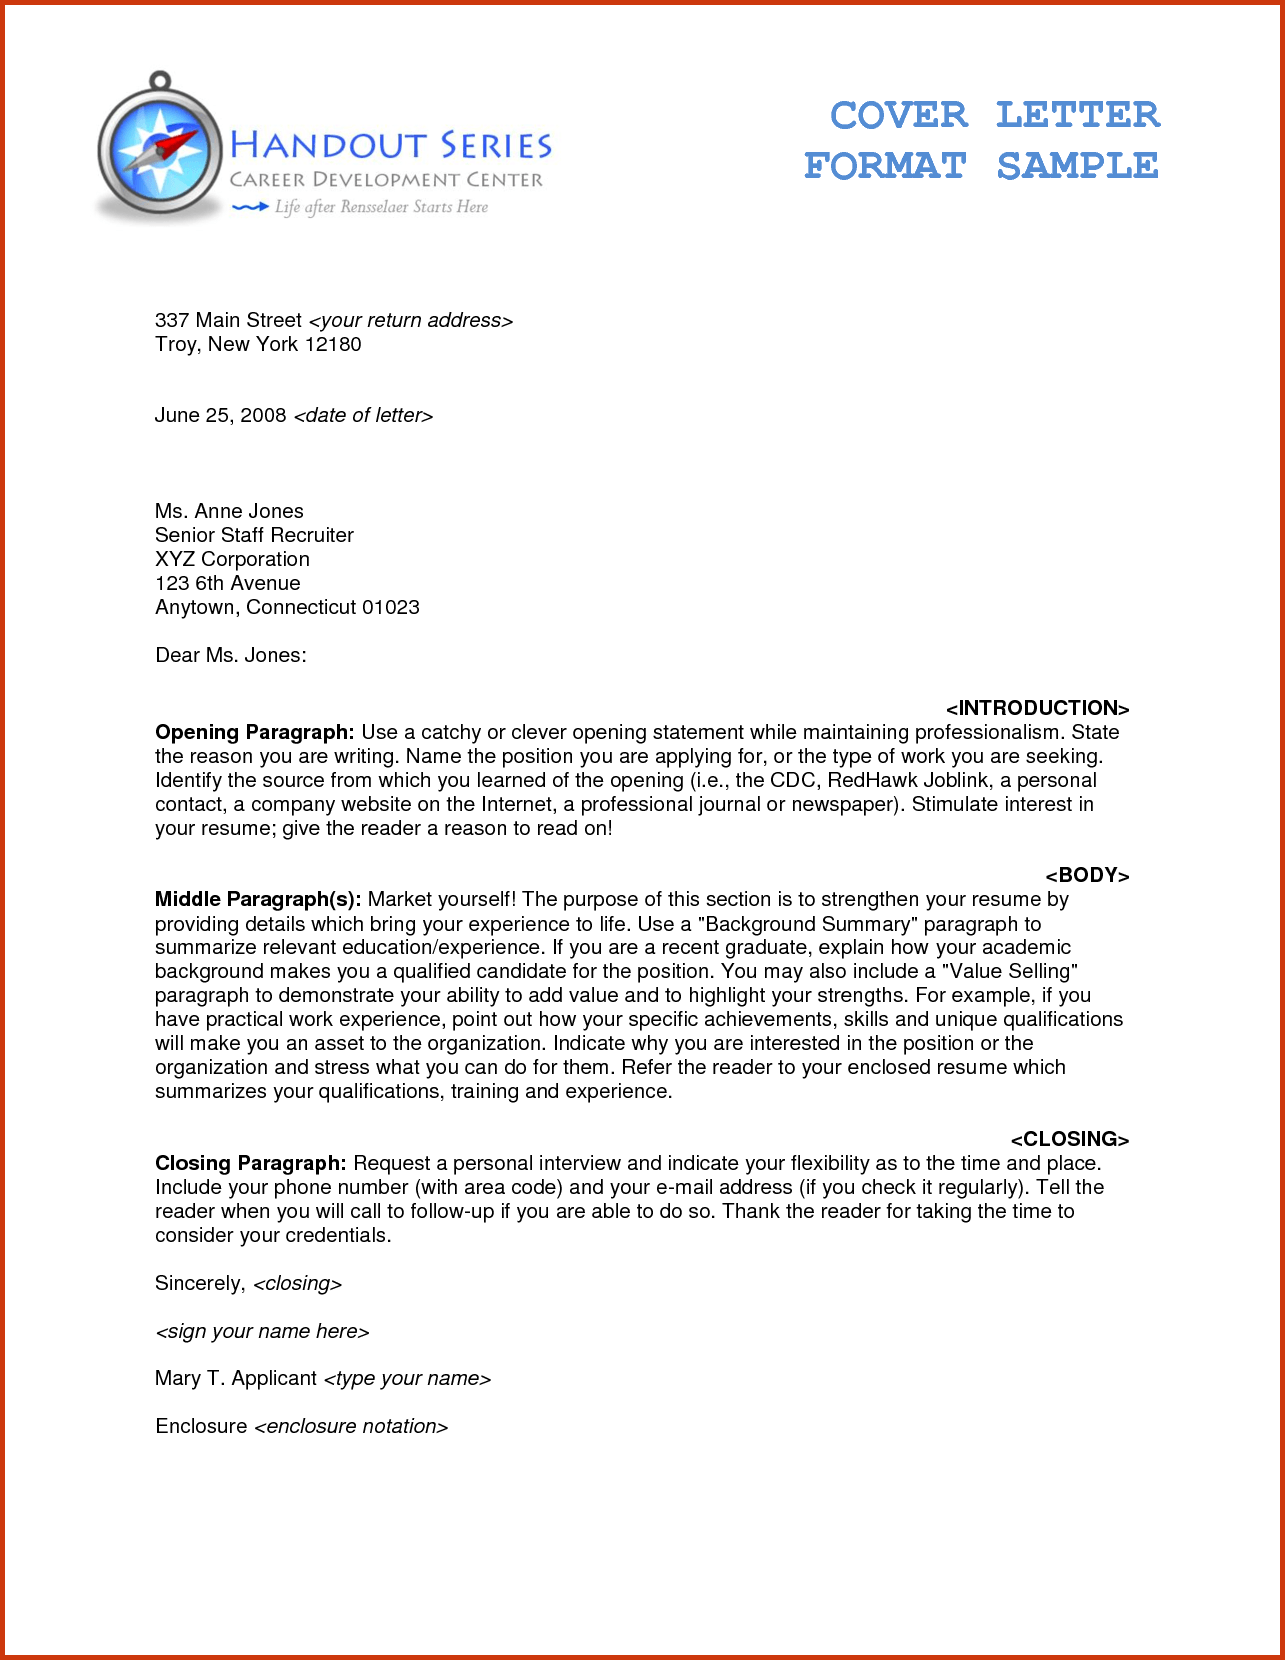 Cover letter very good application for graduate assistant format cover letter very good application for graduate assistant format exampleformal business with enclosures examples proper resume spiritdancerdesigns Gallery